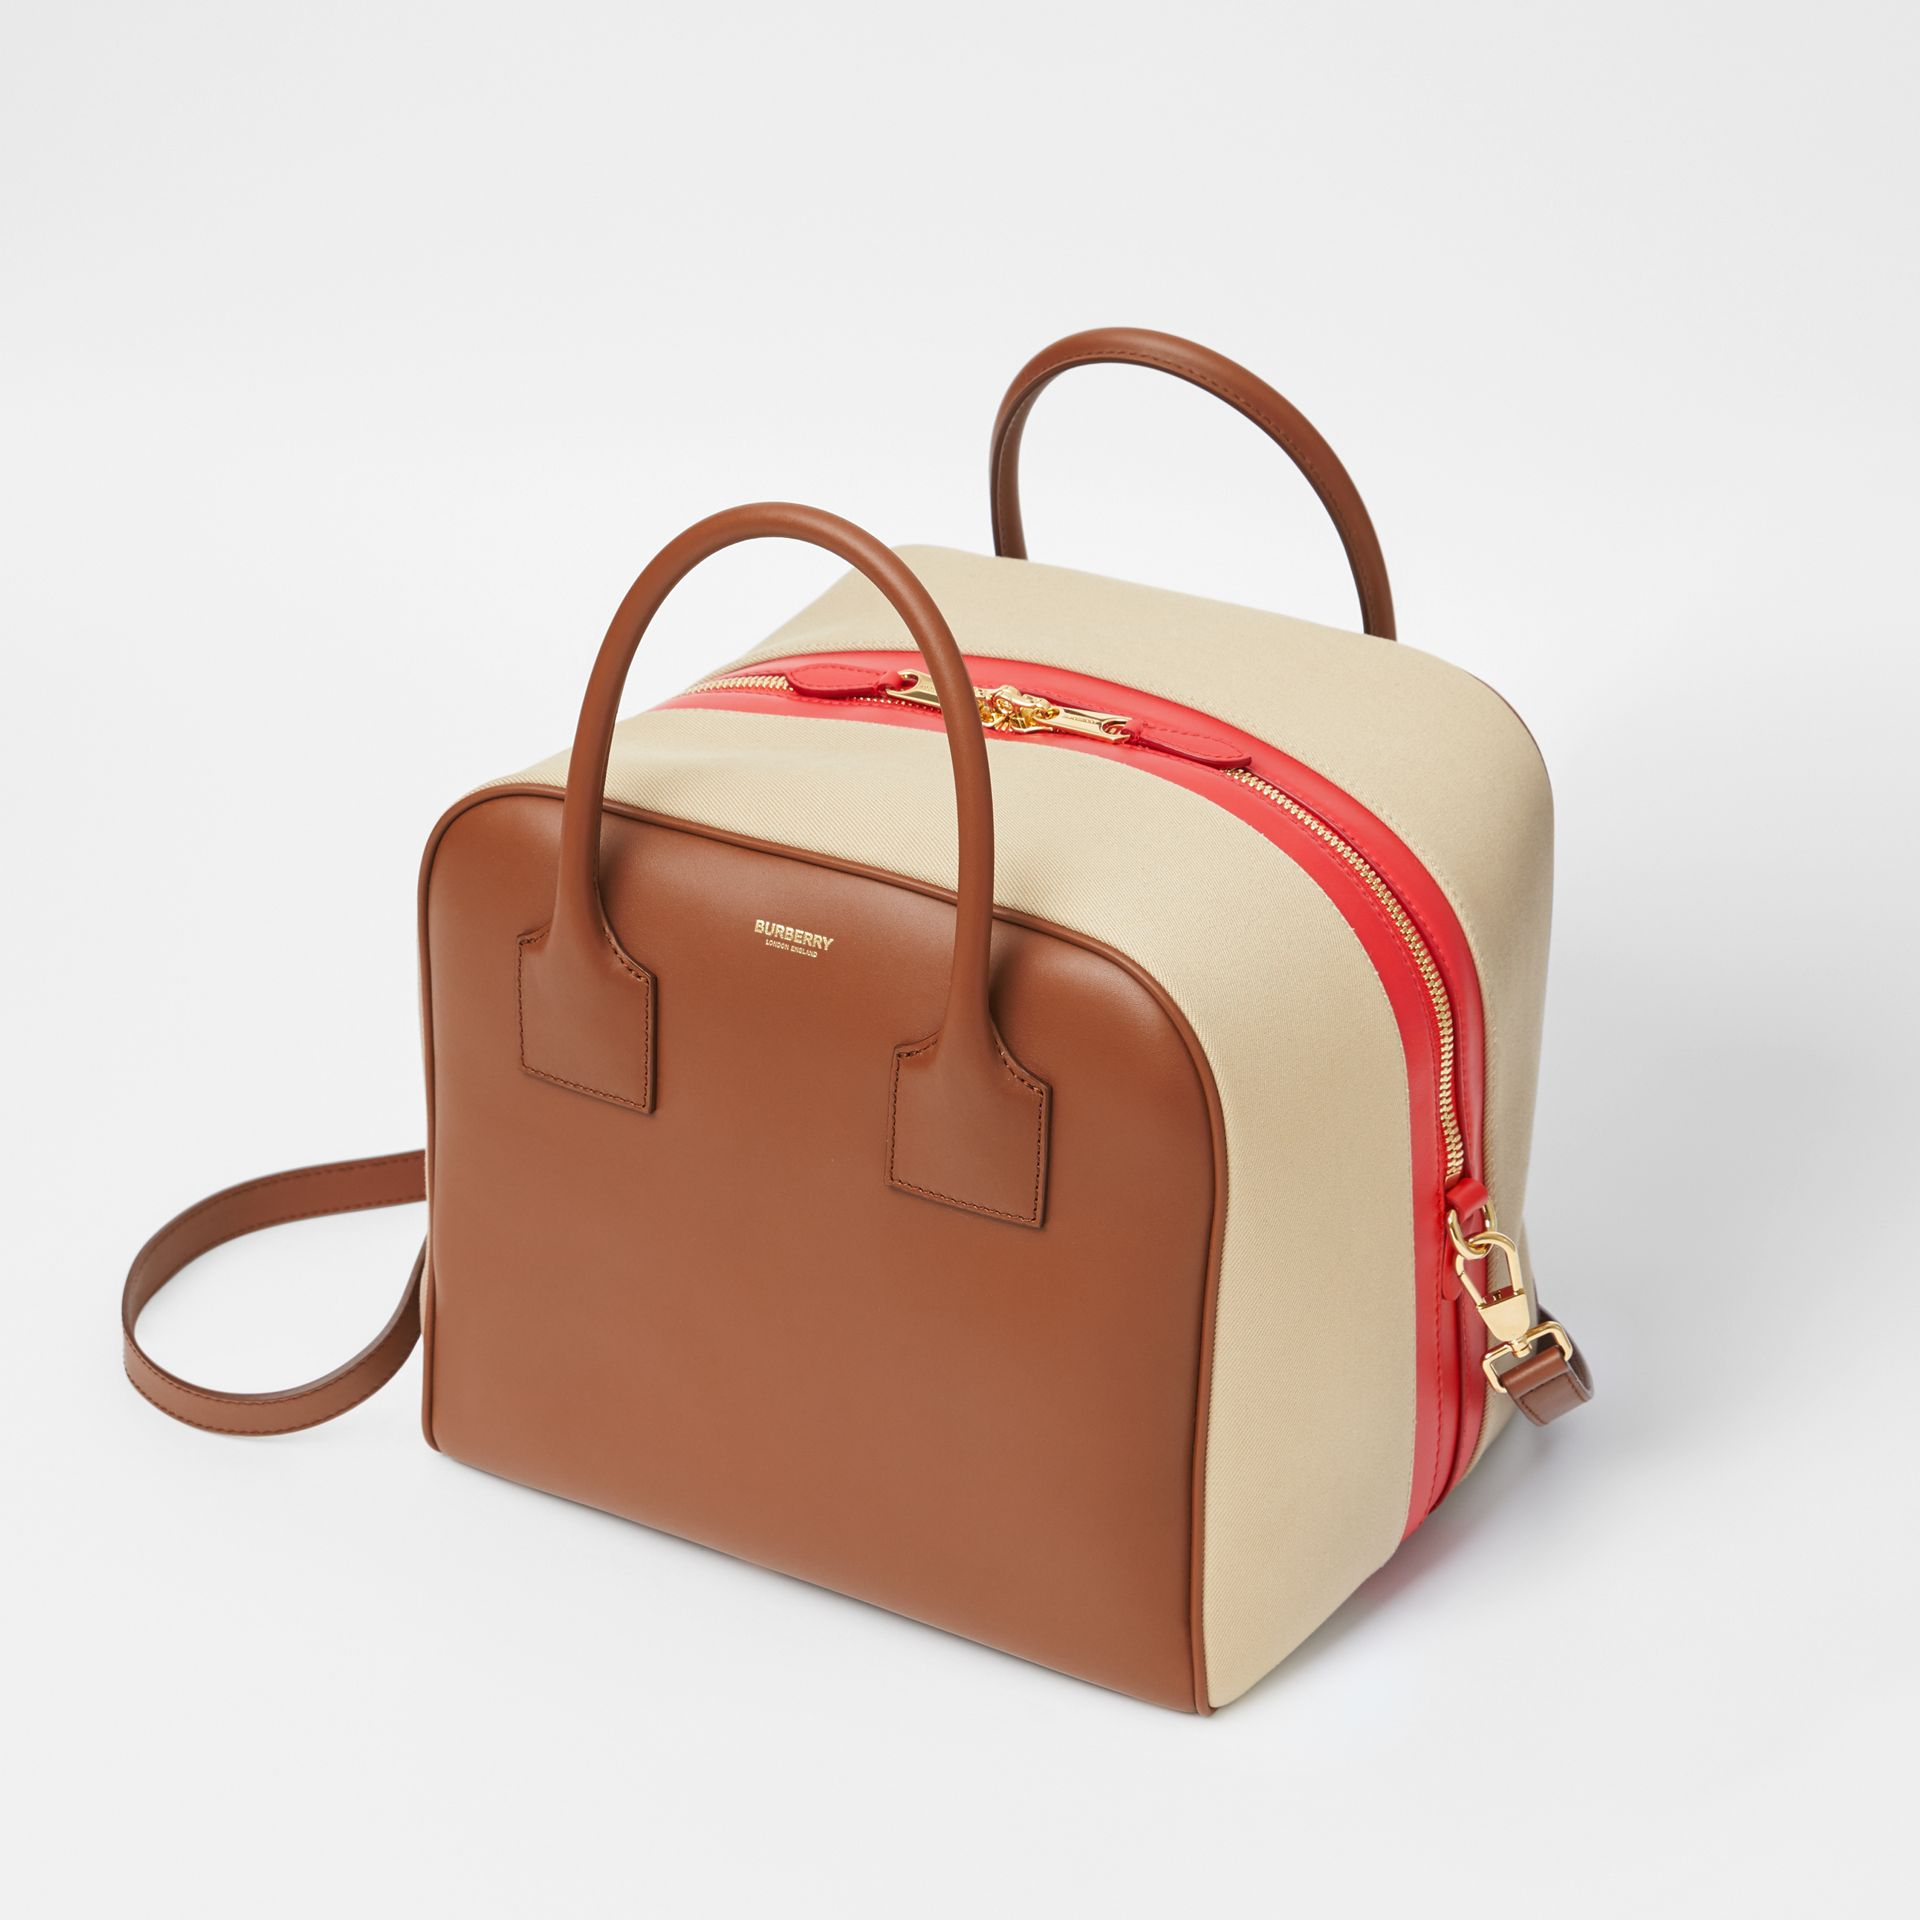 Medium Leather and Cotton Canvas Cube Bag in Malt Brown - Women | Burberry Australia - gallery image 2